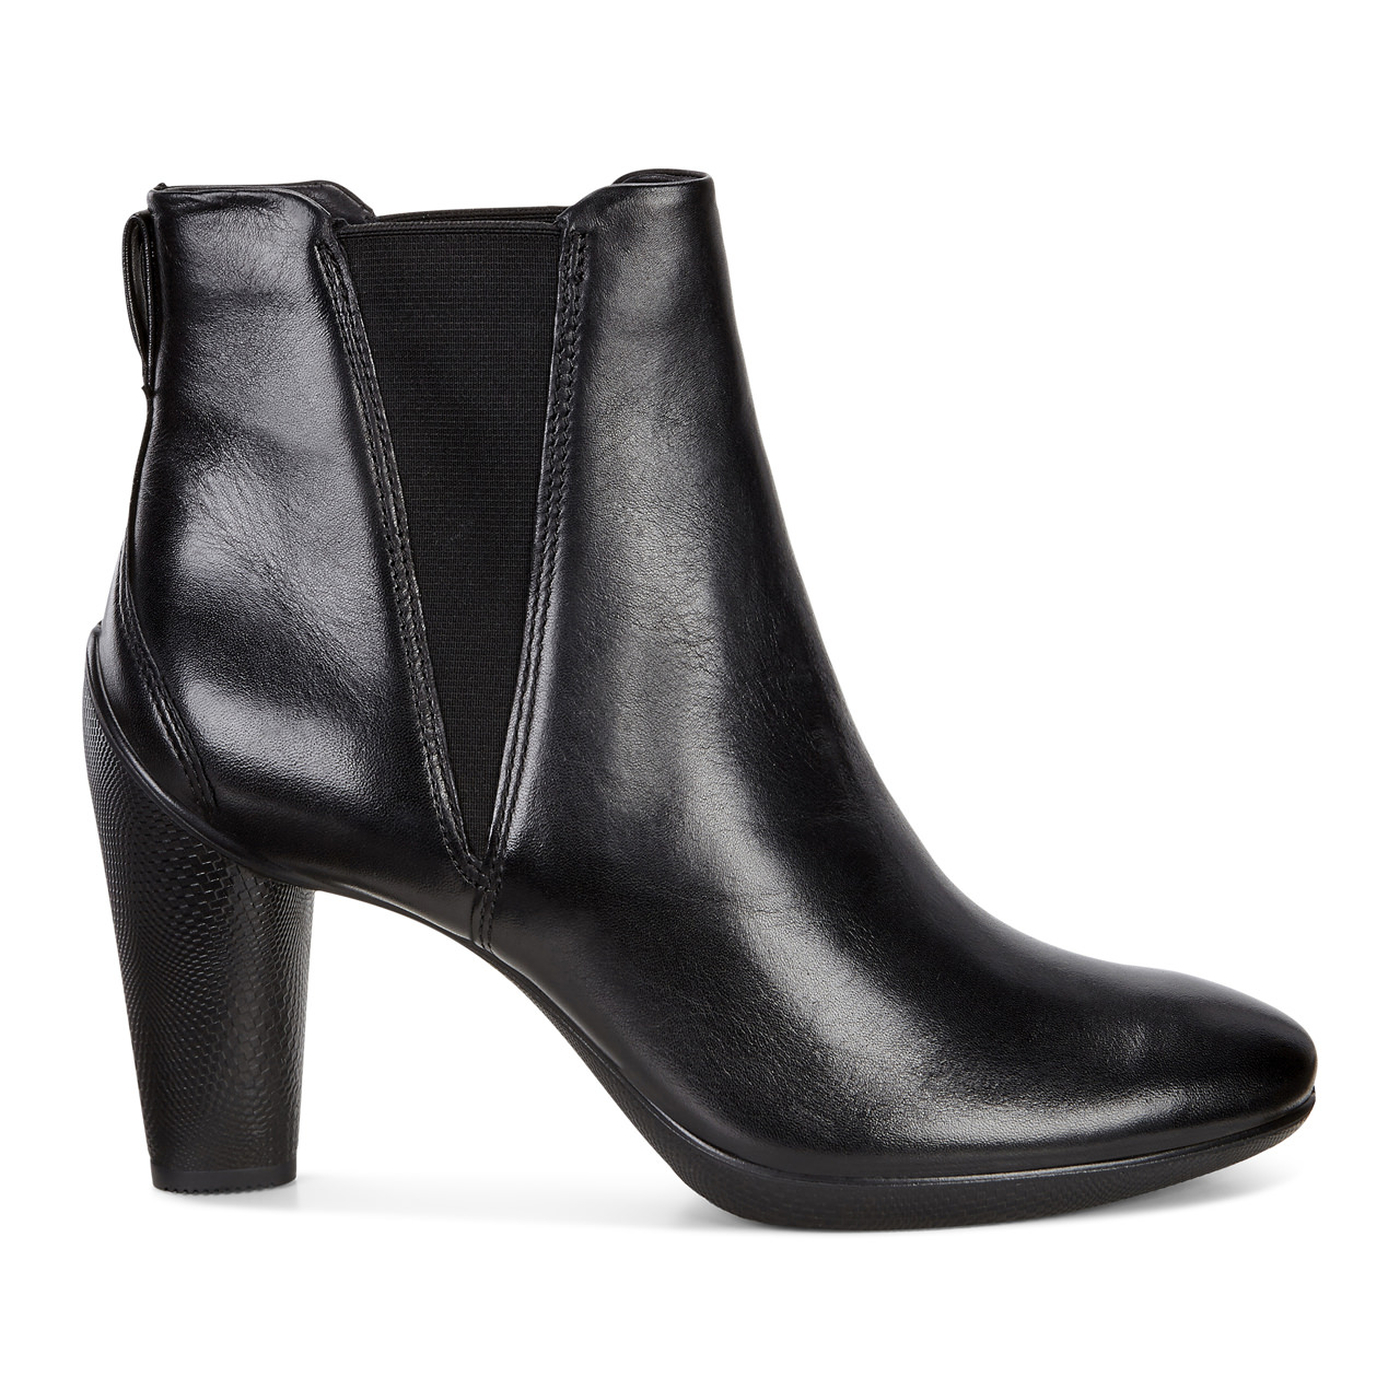 ECCO SCULPTURED 75 Ankle Boot